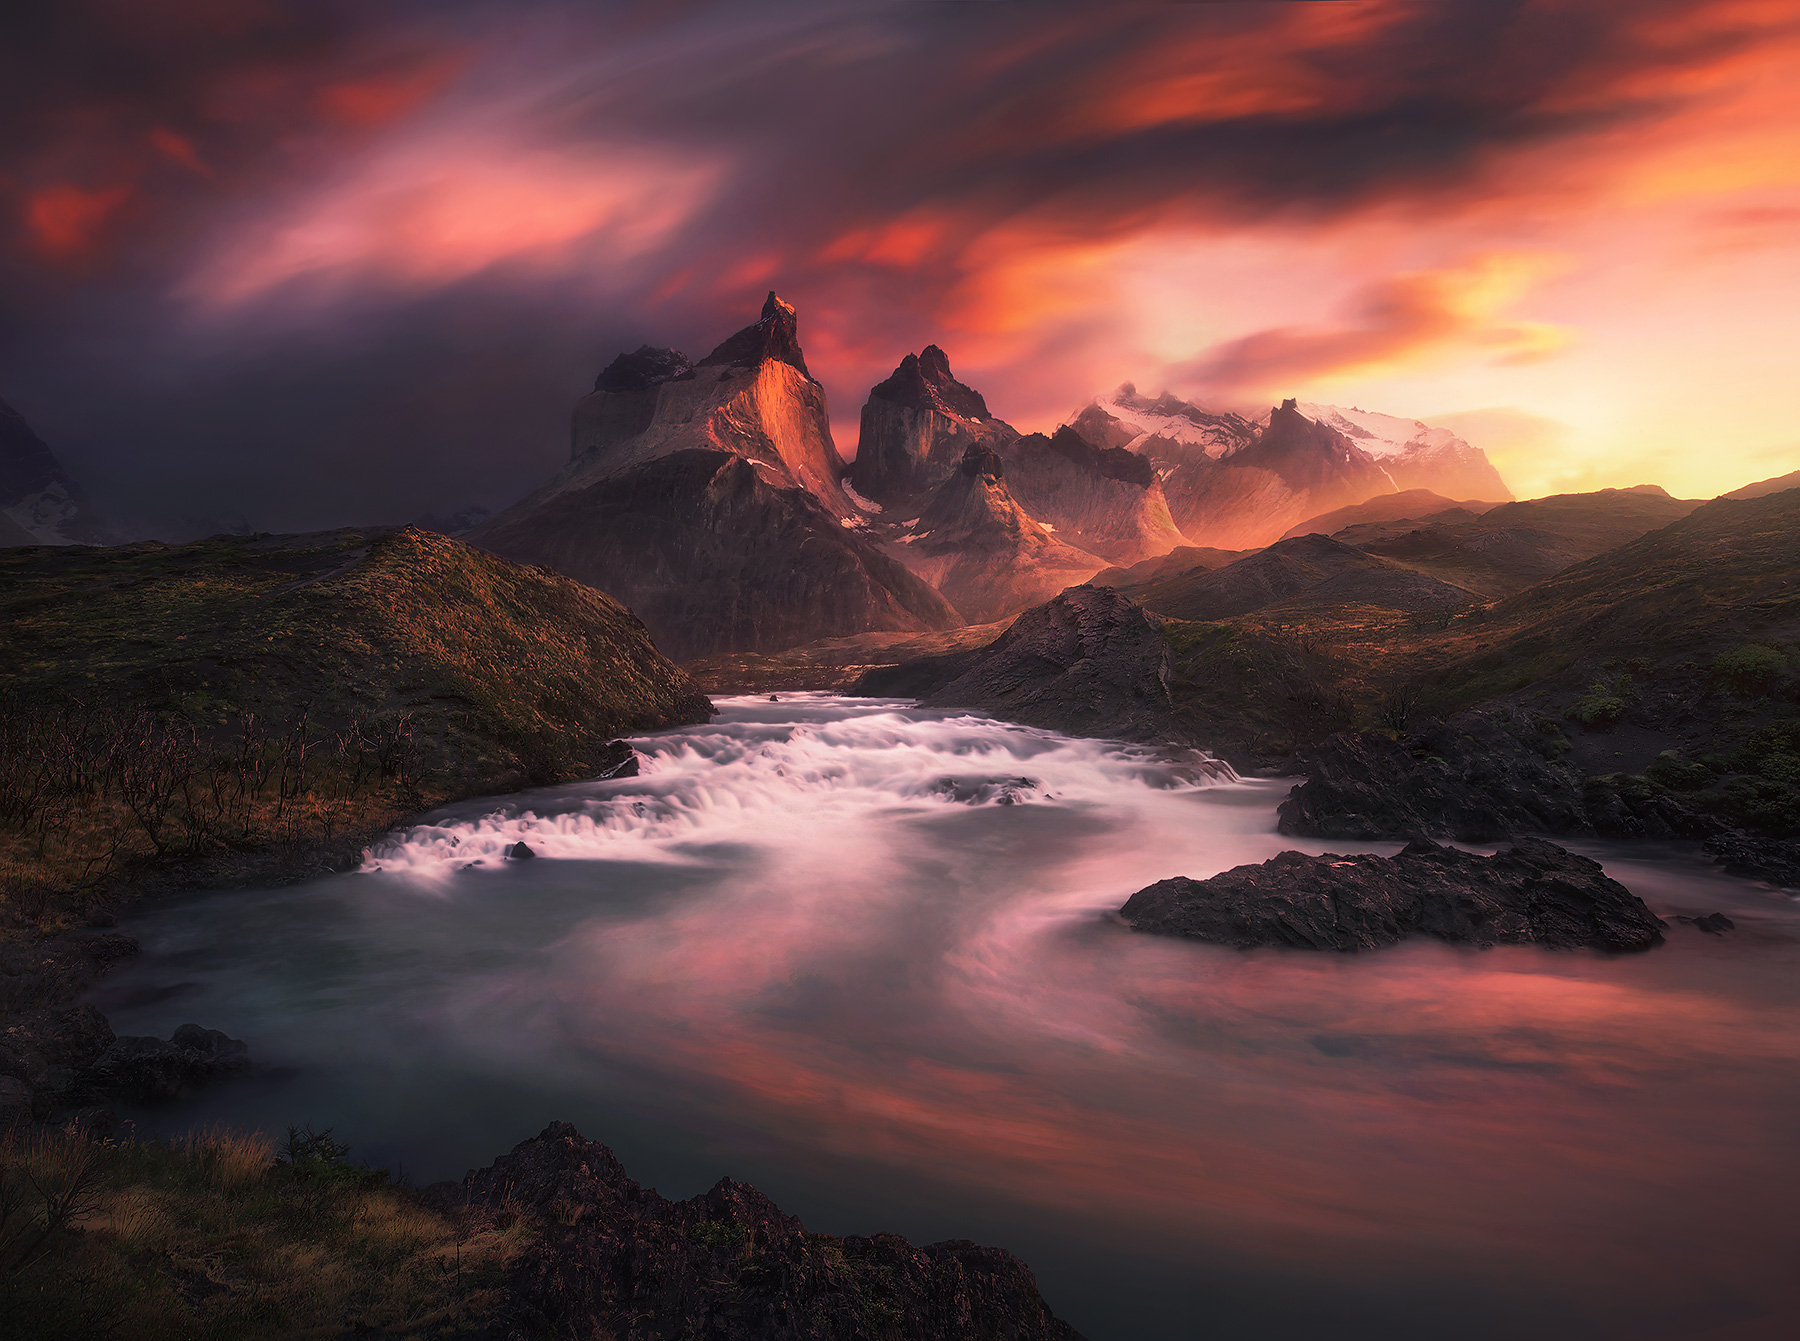 A unique view of the famous Salto Grande Falls and Torres Del Paine, bathed in sunrise colors.